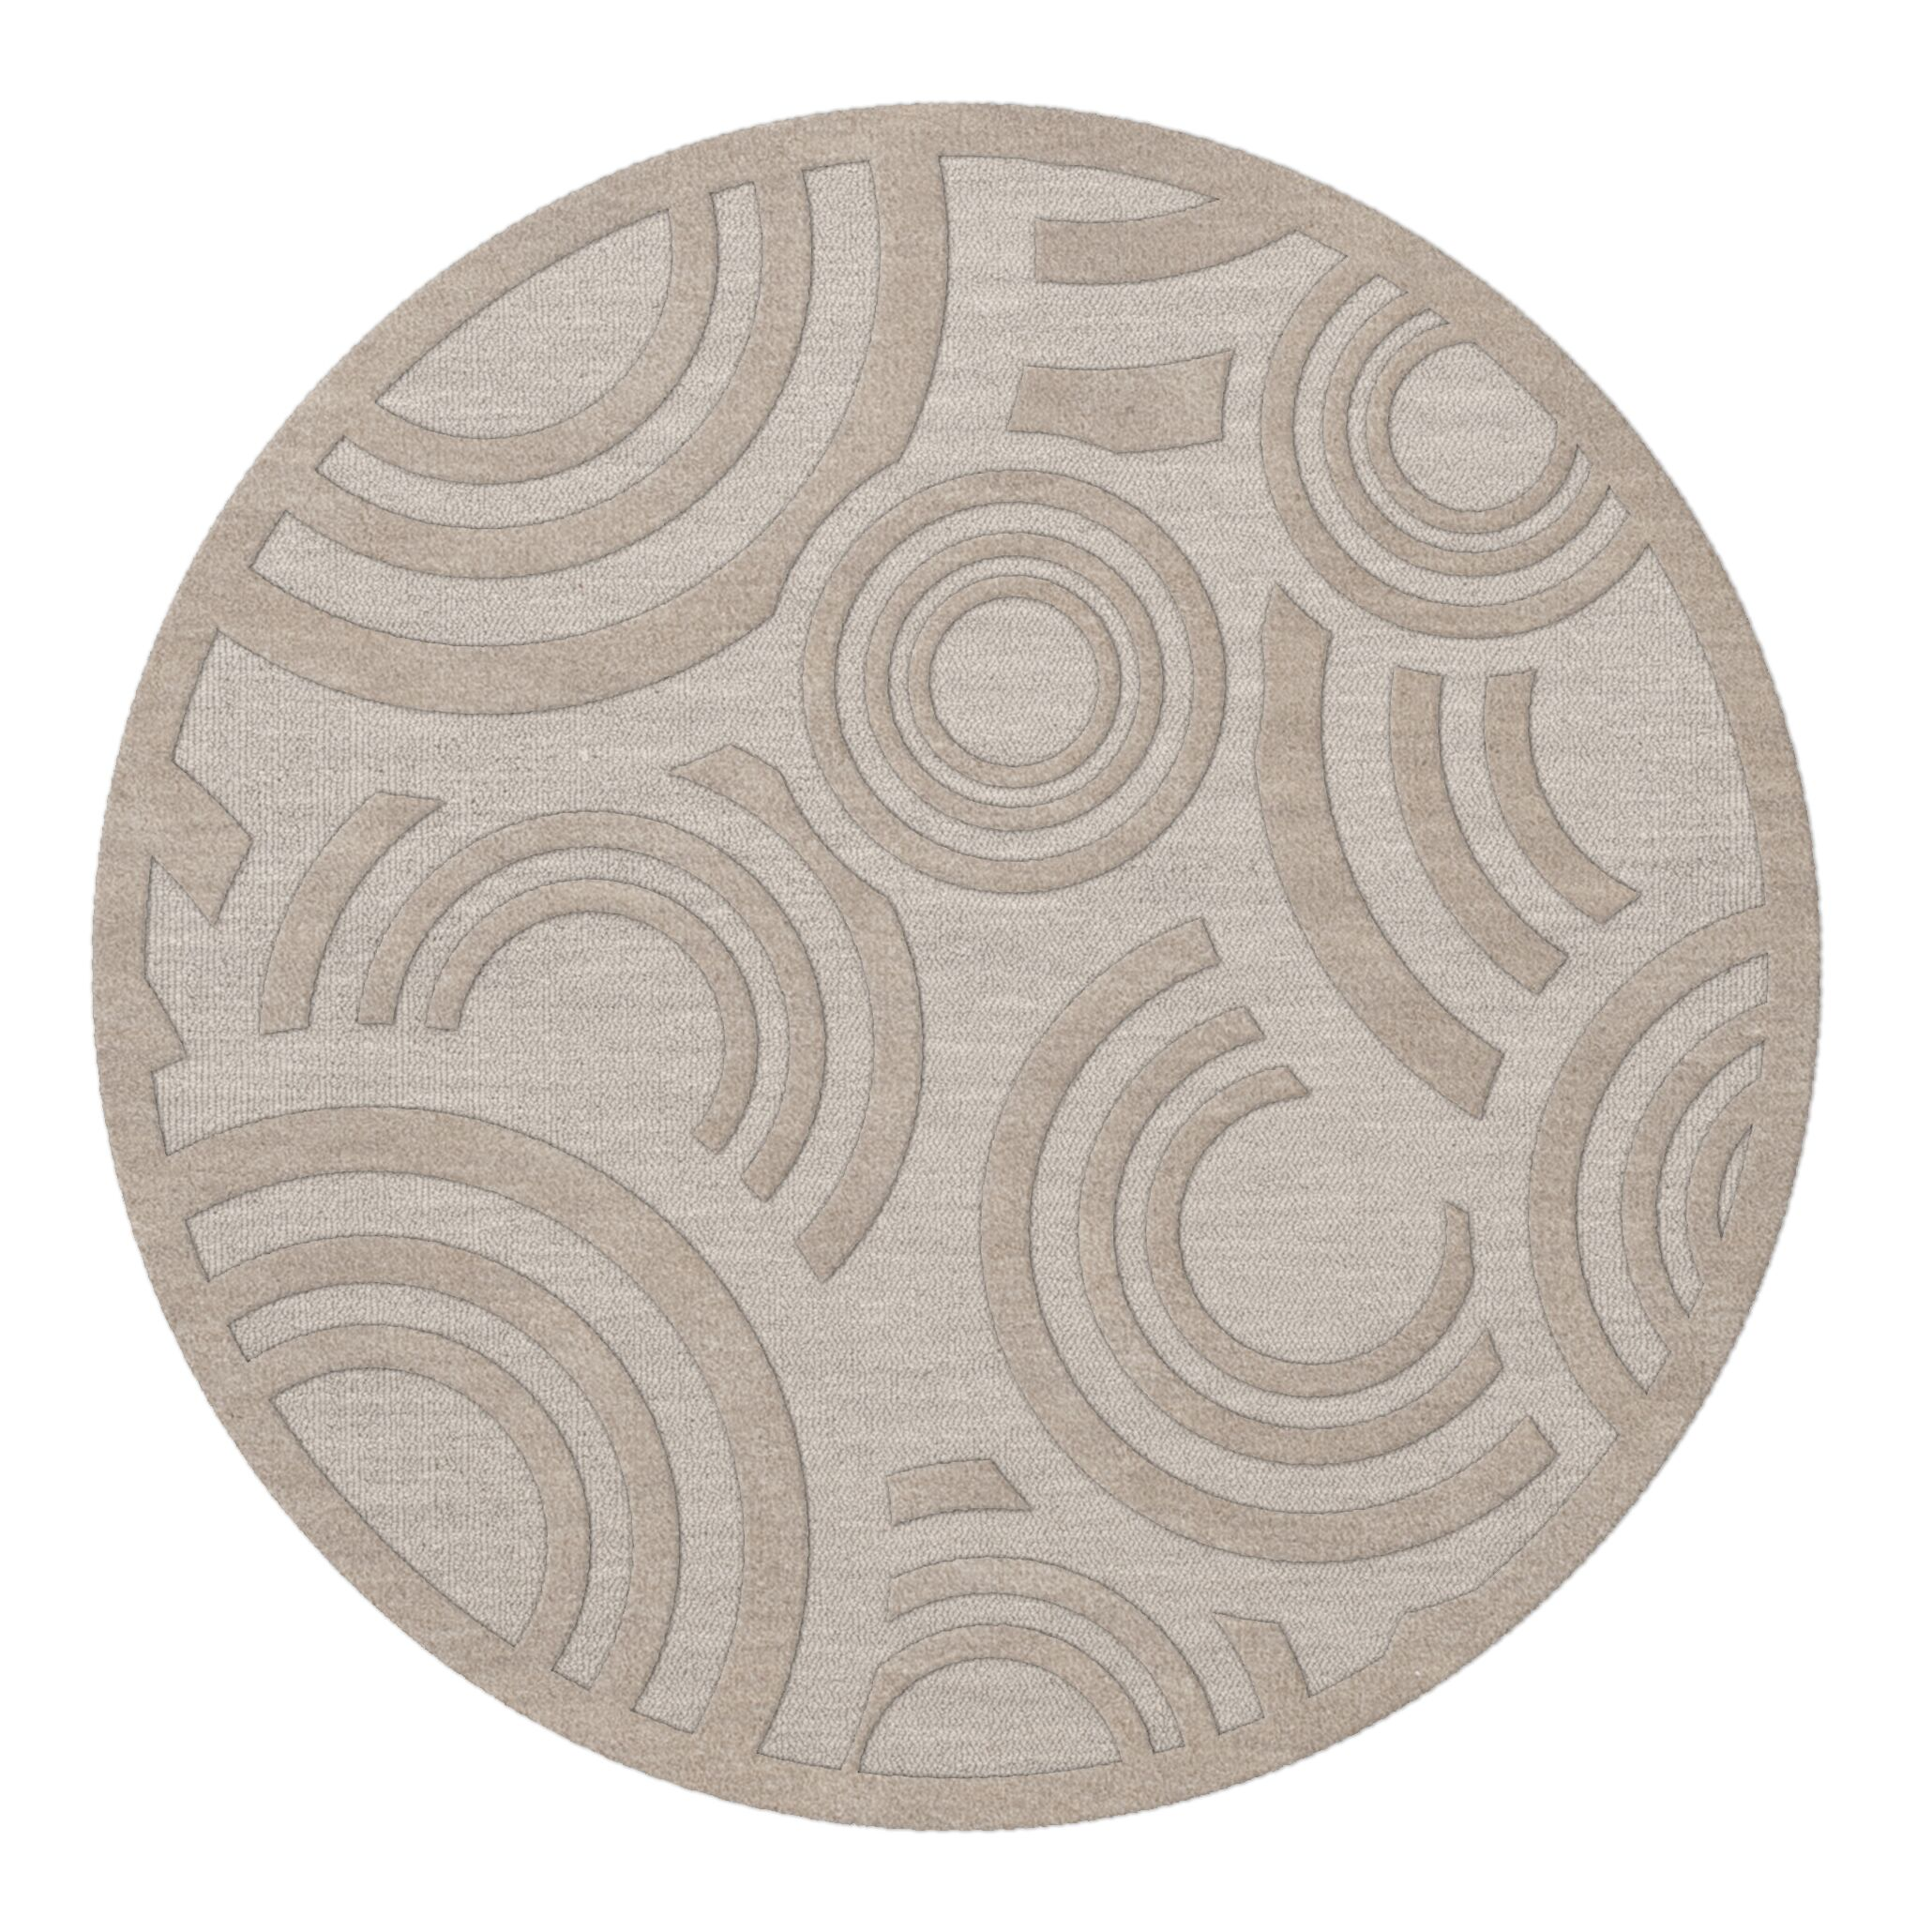 Dover Tufted Wool Putty Area Rug Rug Size: Round 4'